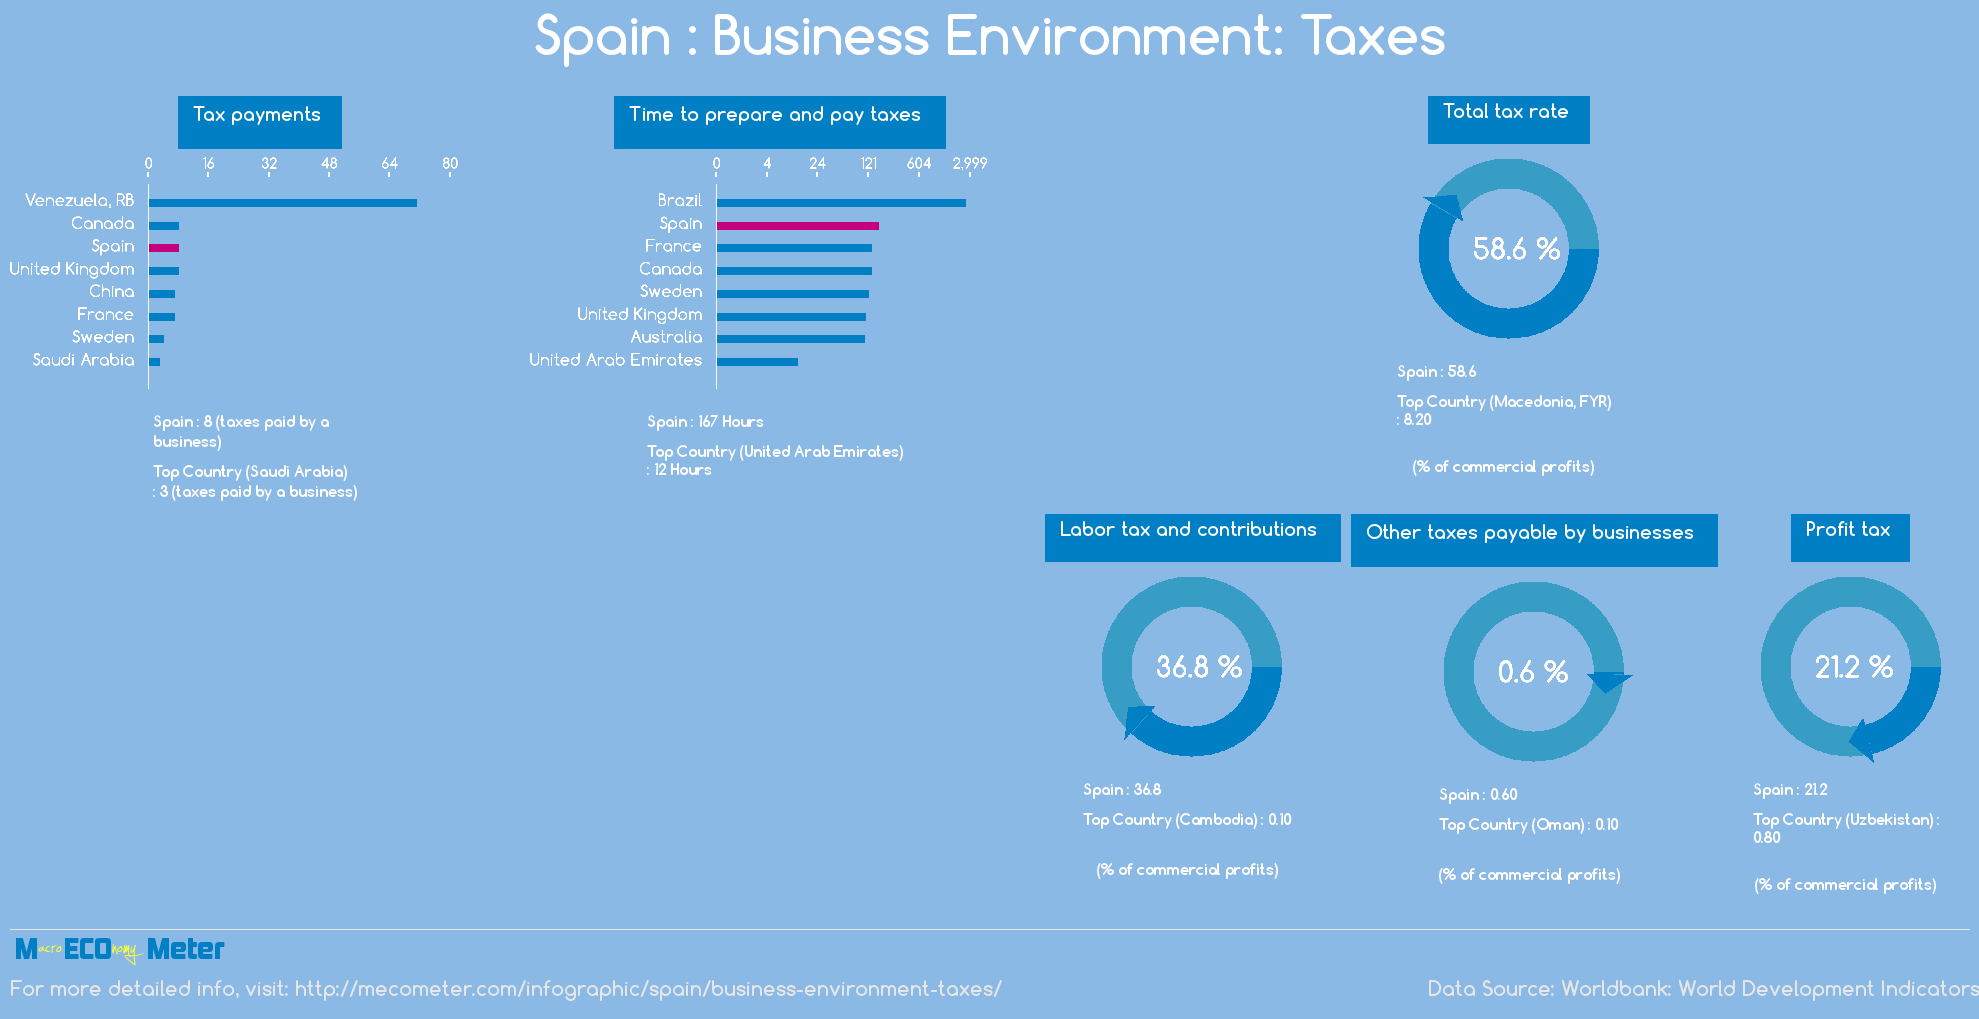 Spain : Business Environment: Taxes